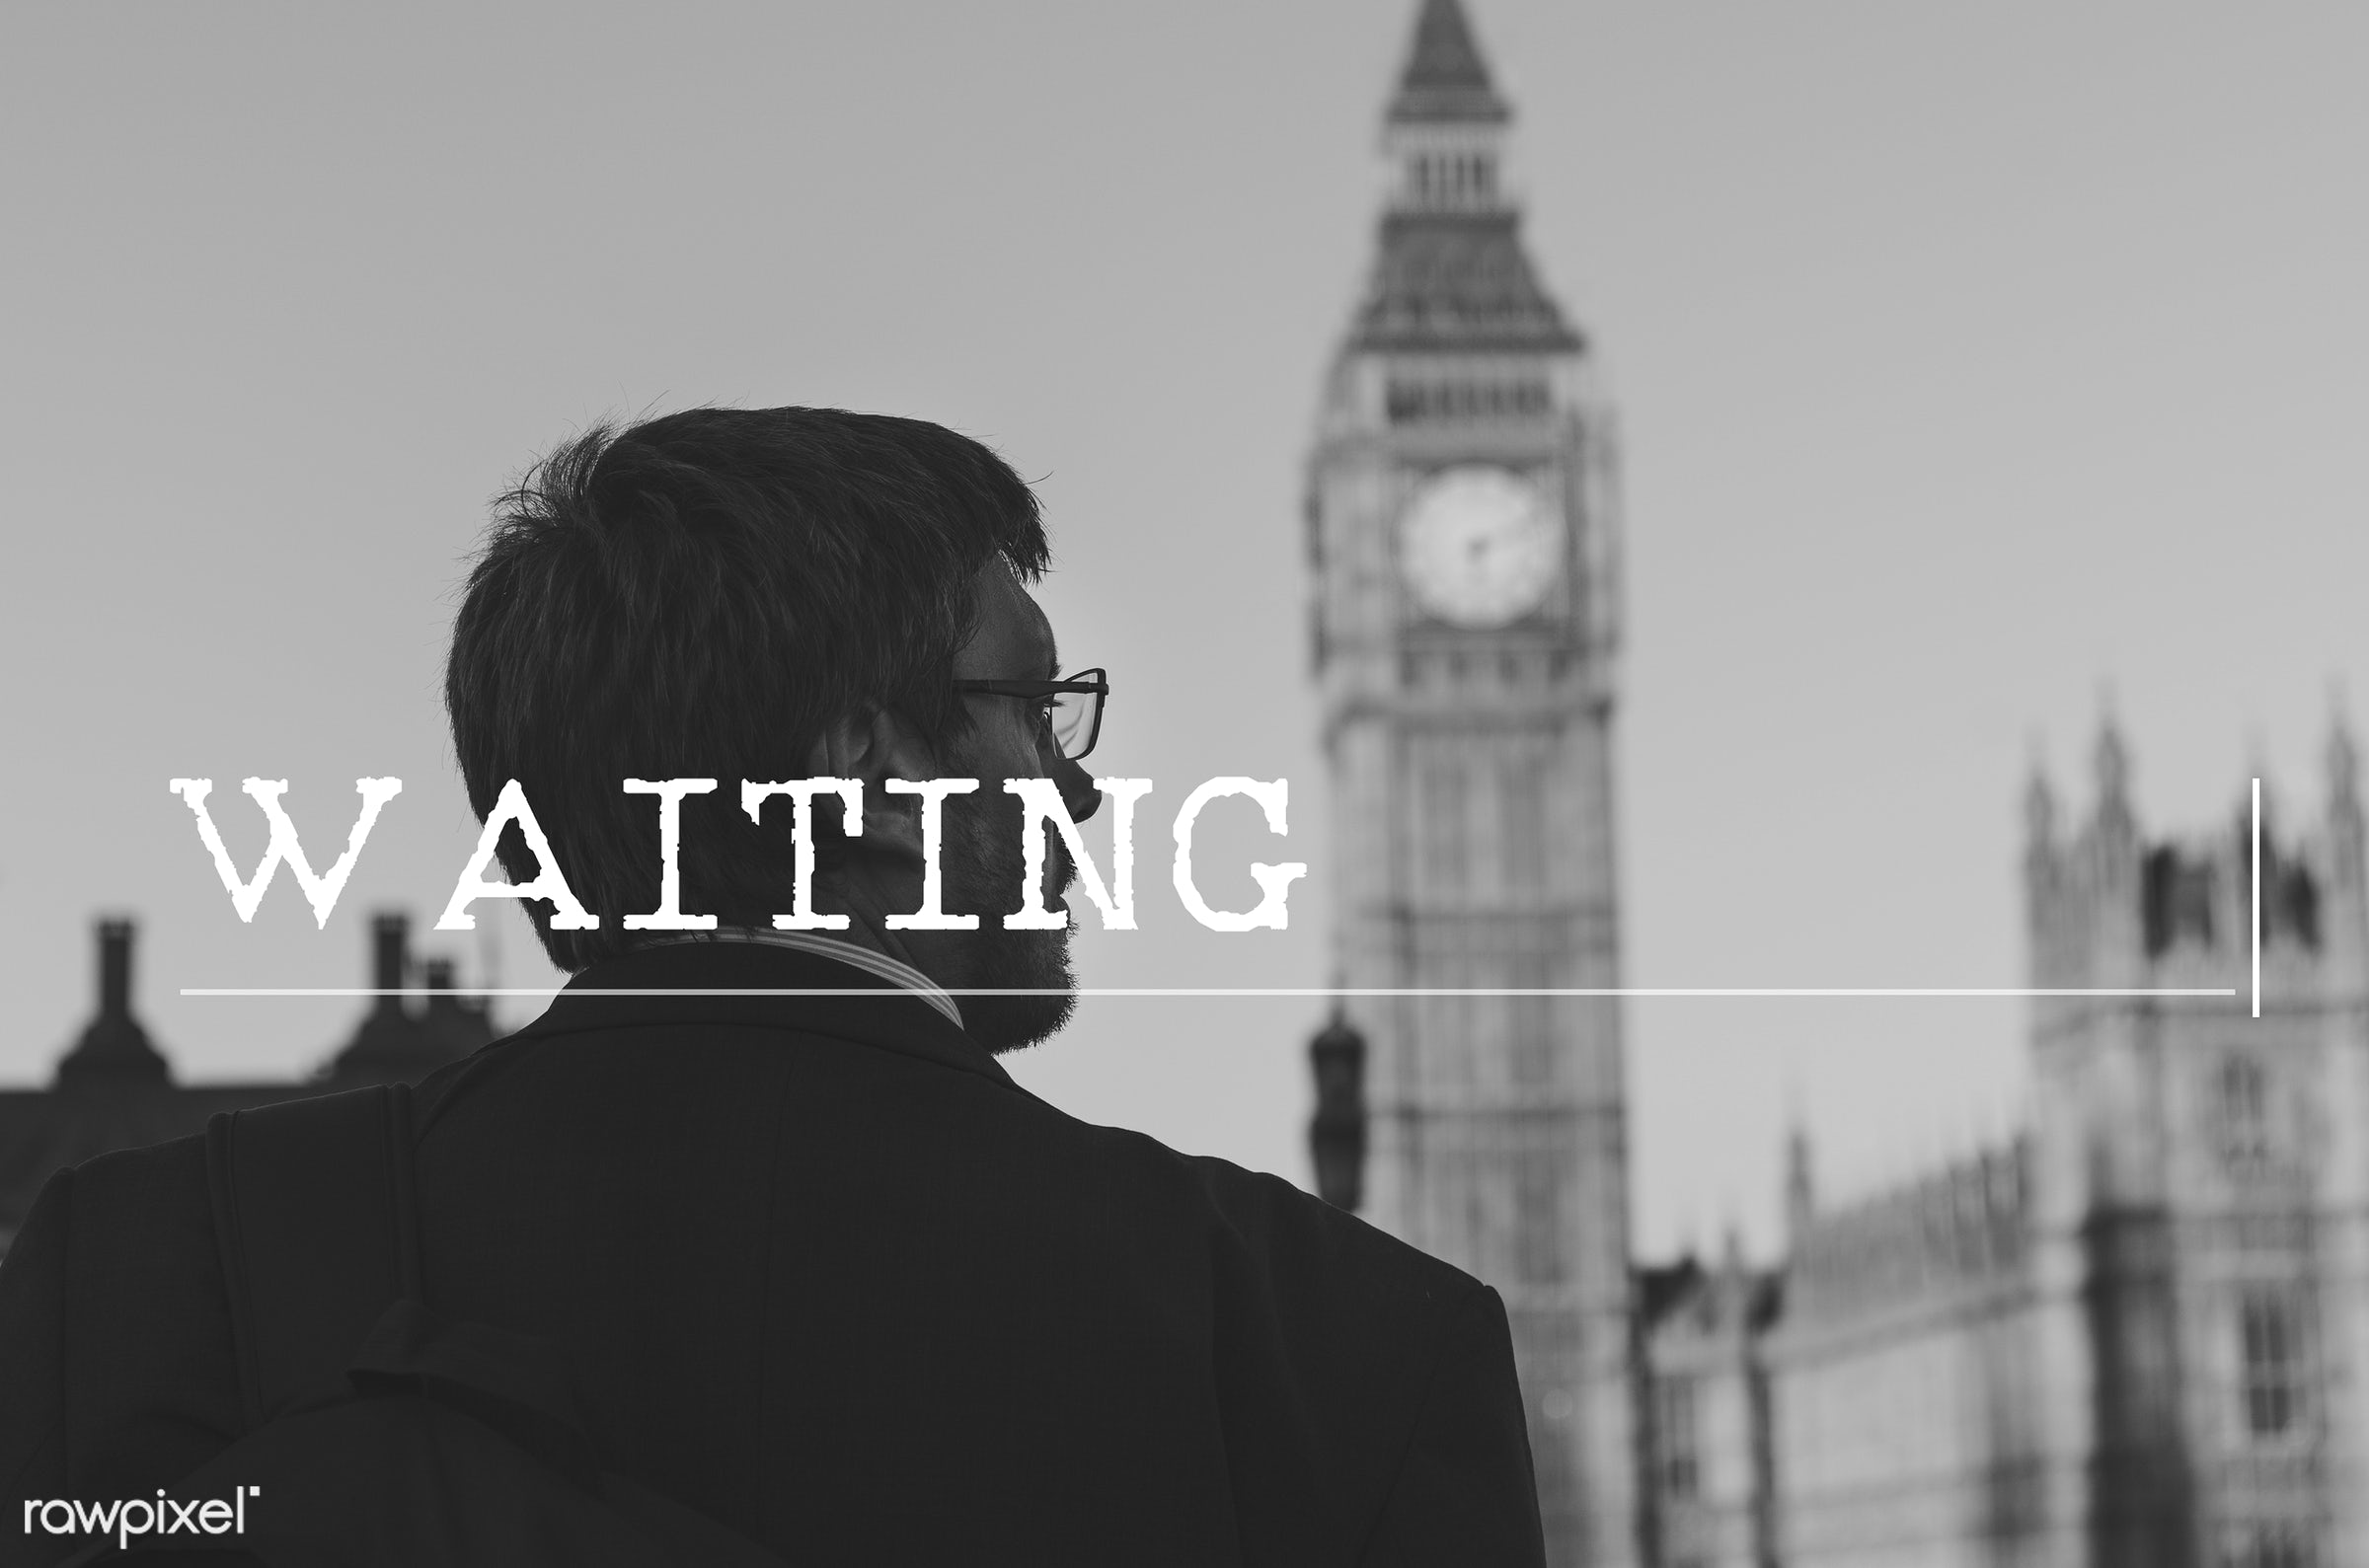 believe, better things are coming, big ben, britain, building, business, businessmen, calm, clam, clock, england, faith,...